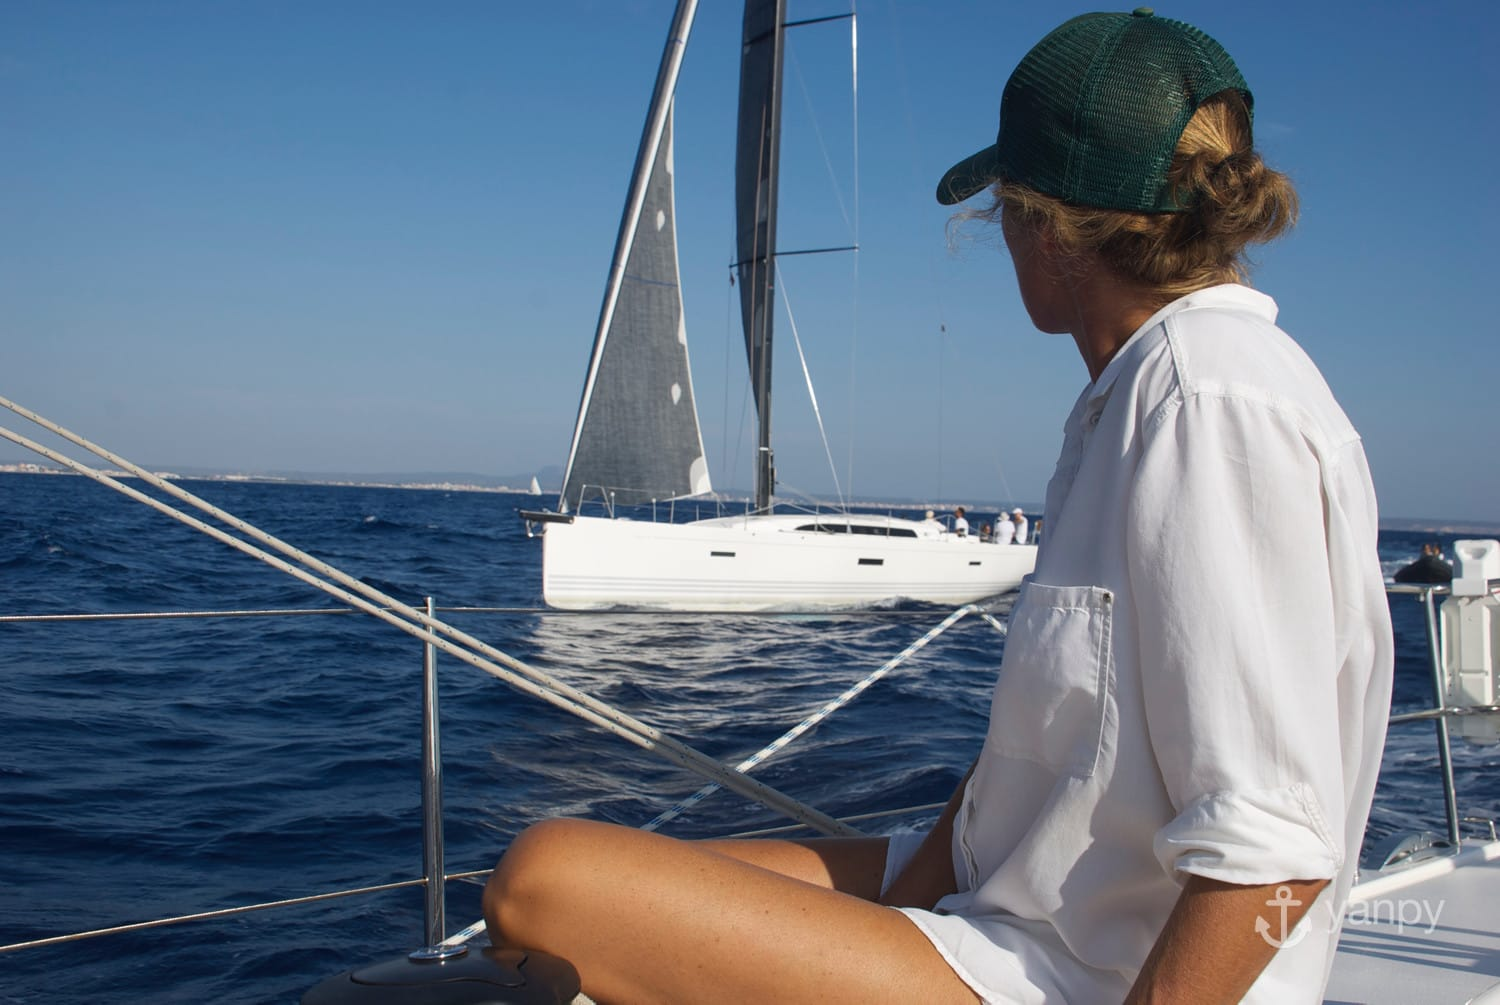 Woman sailing a boat in Majorca